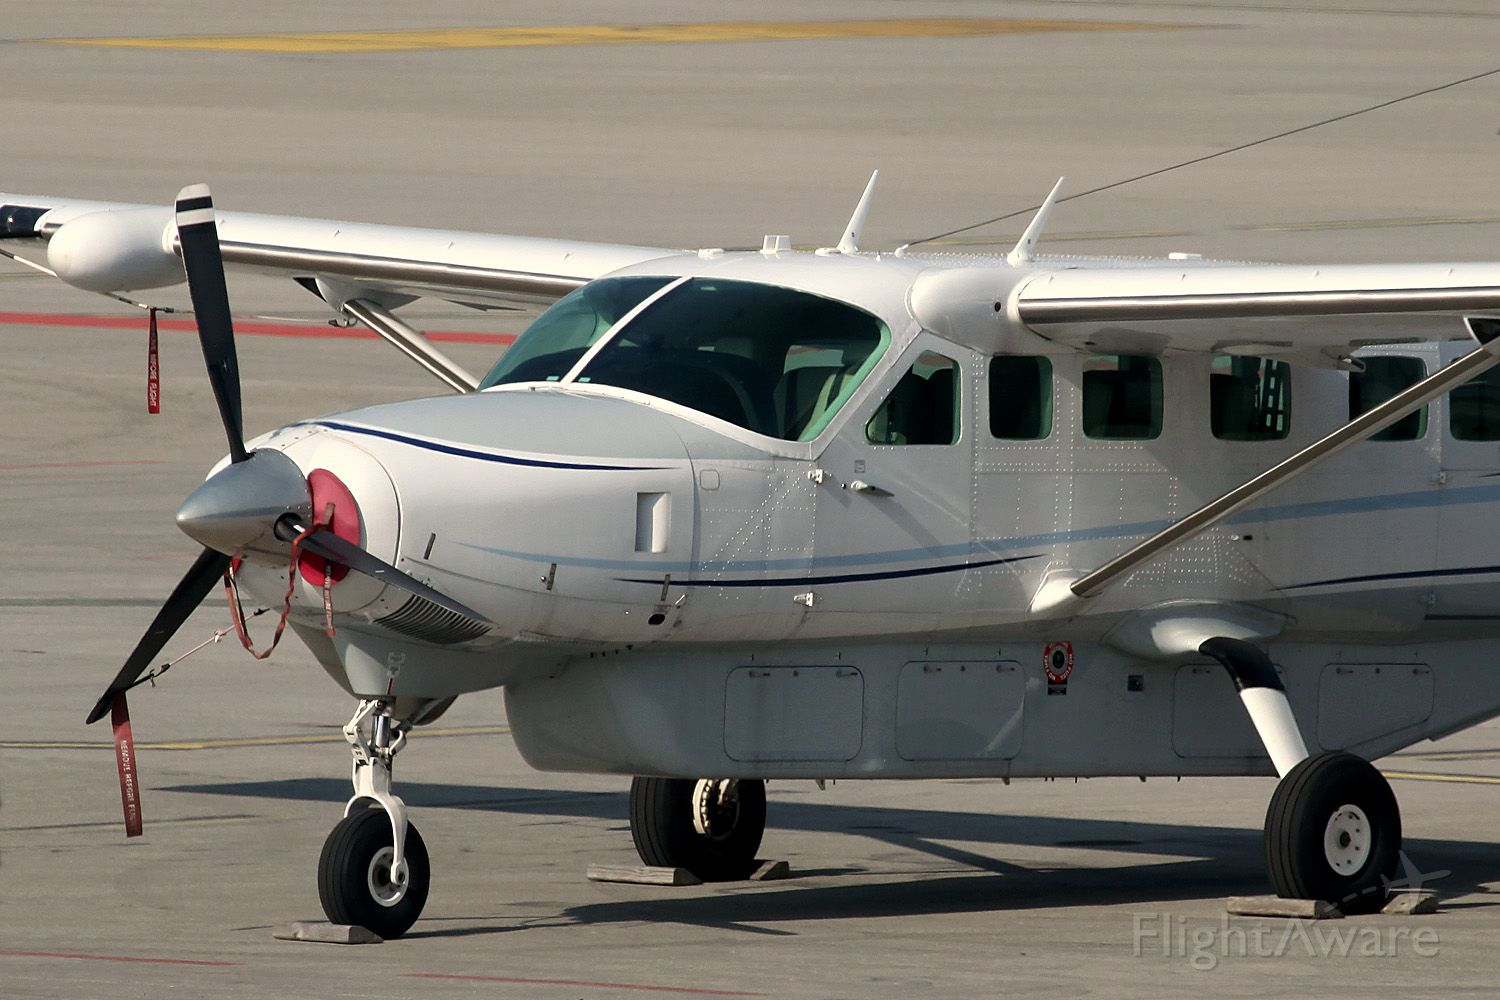 Cessna Caravan (N717RD) - Stationed at EBLG 2013 (Liege airport in Belgium)